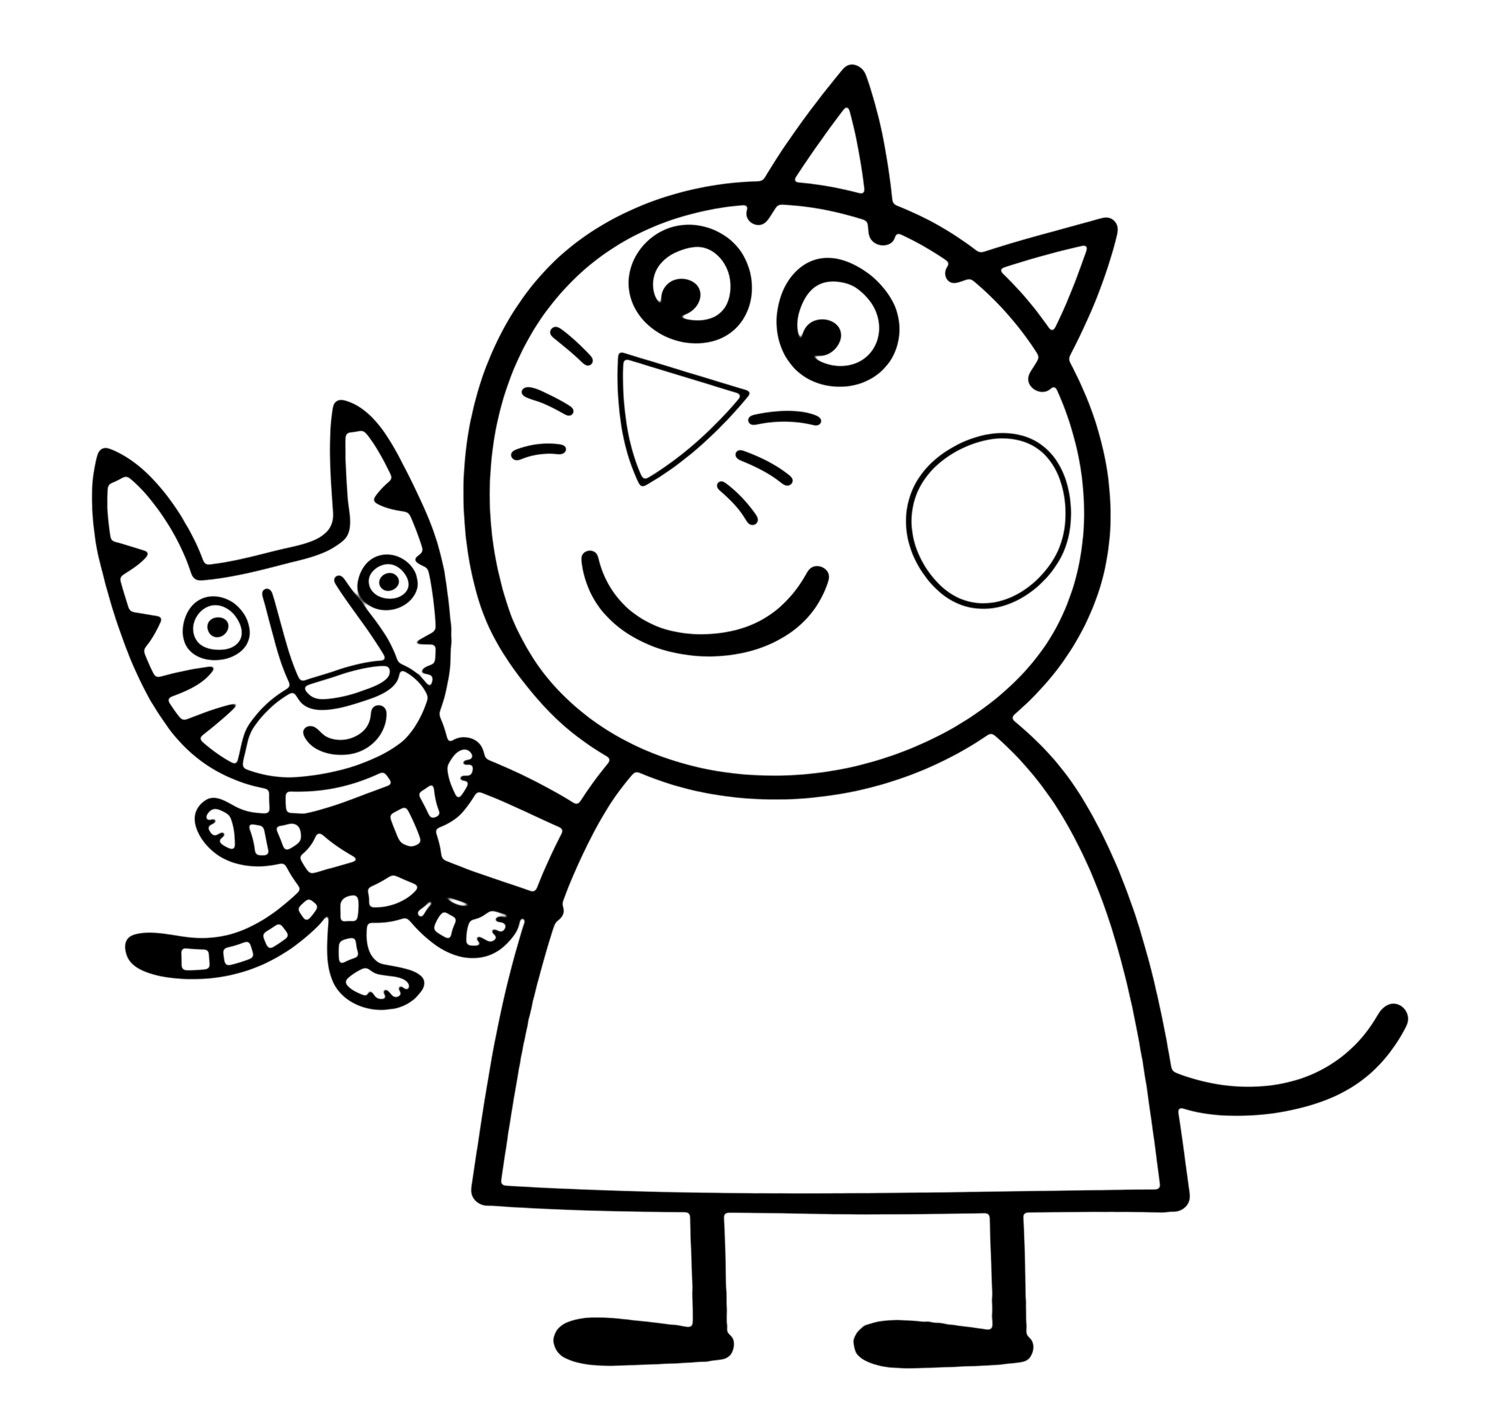 Peppa Pig Candy Cat Coloring Pages From the thousands of